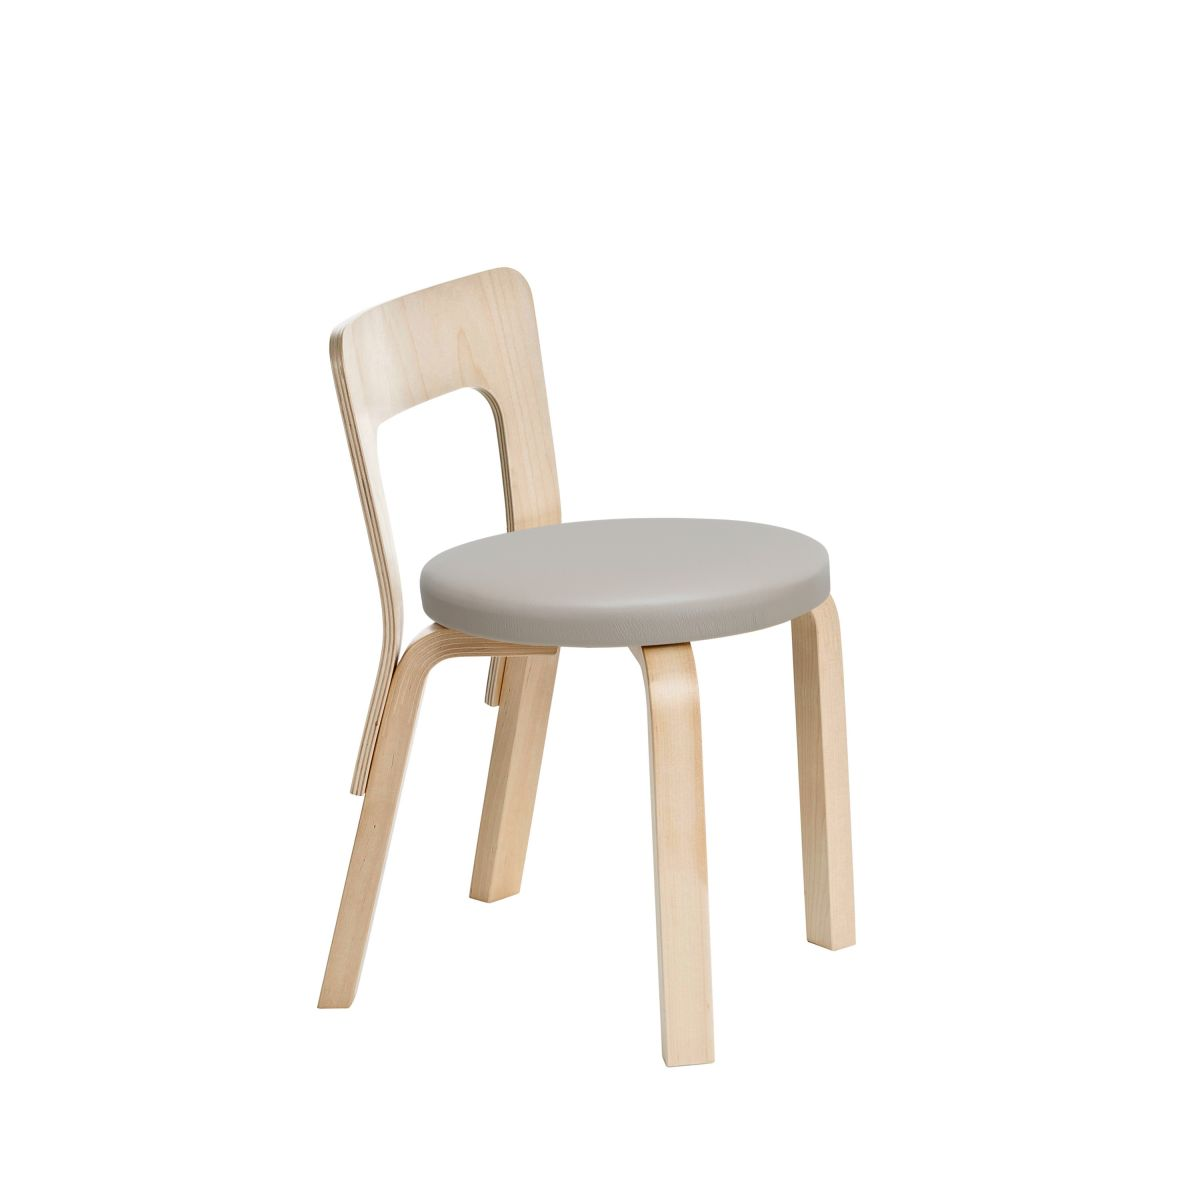 Children's Chair N65 legs birch_seat leather upholstery padding_F